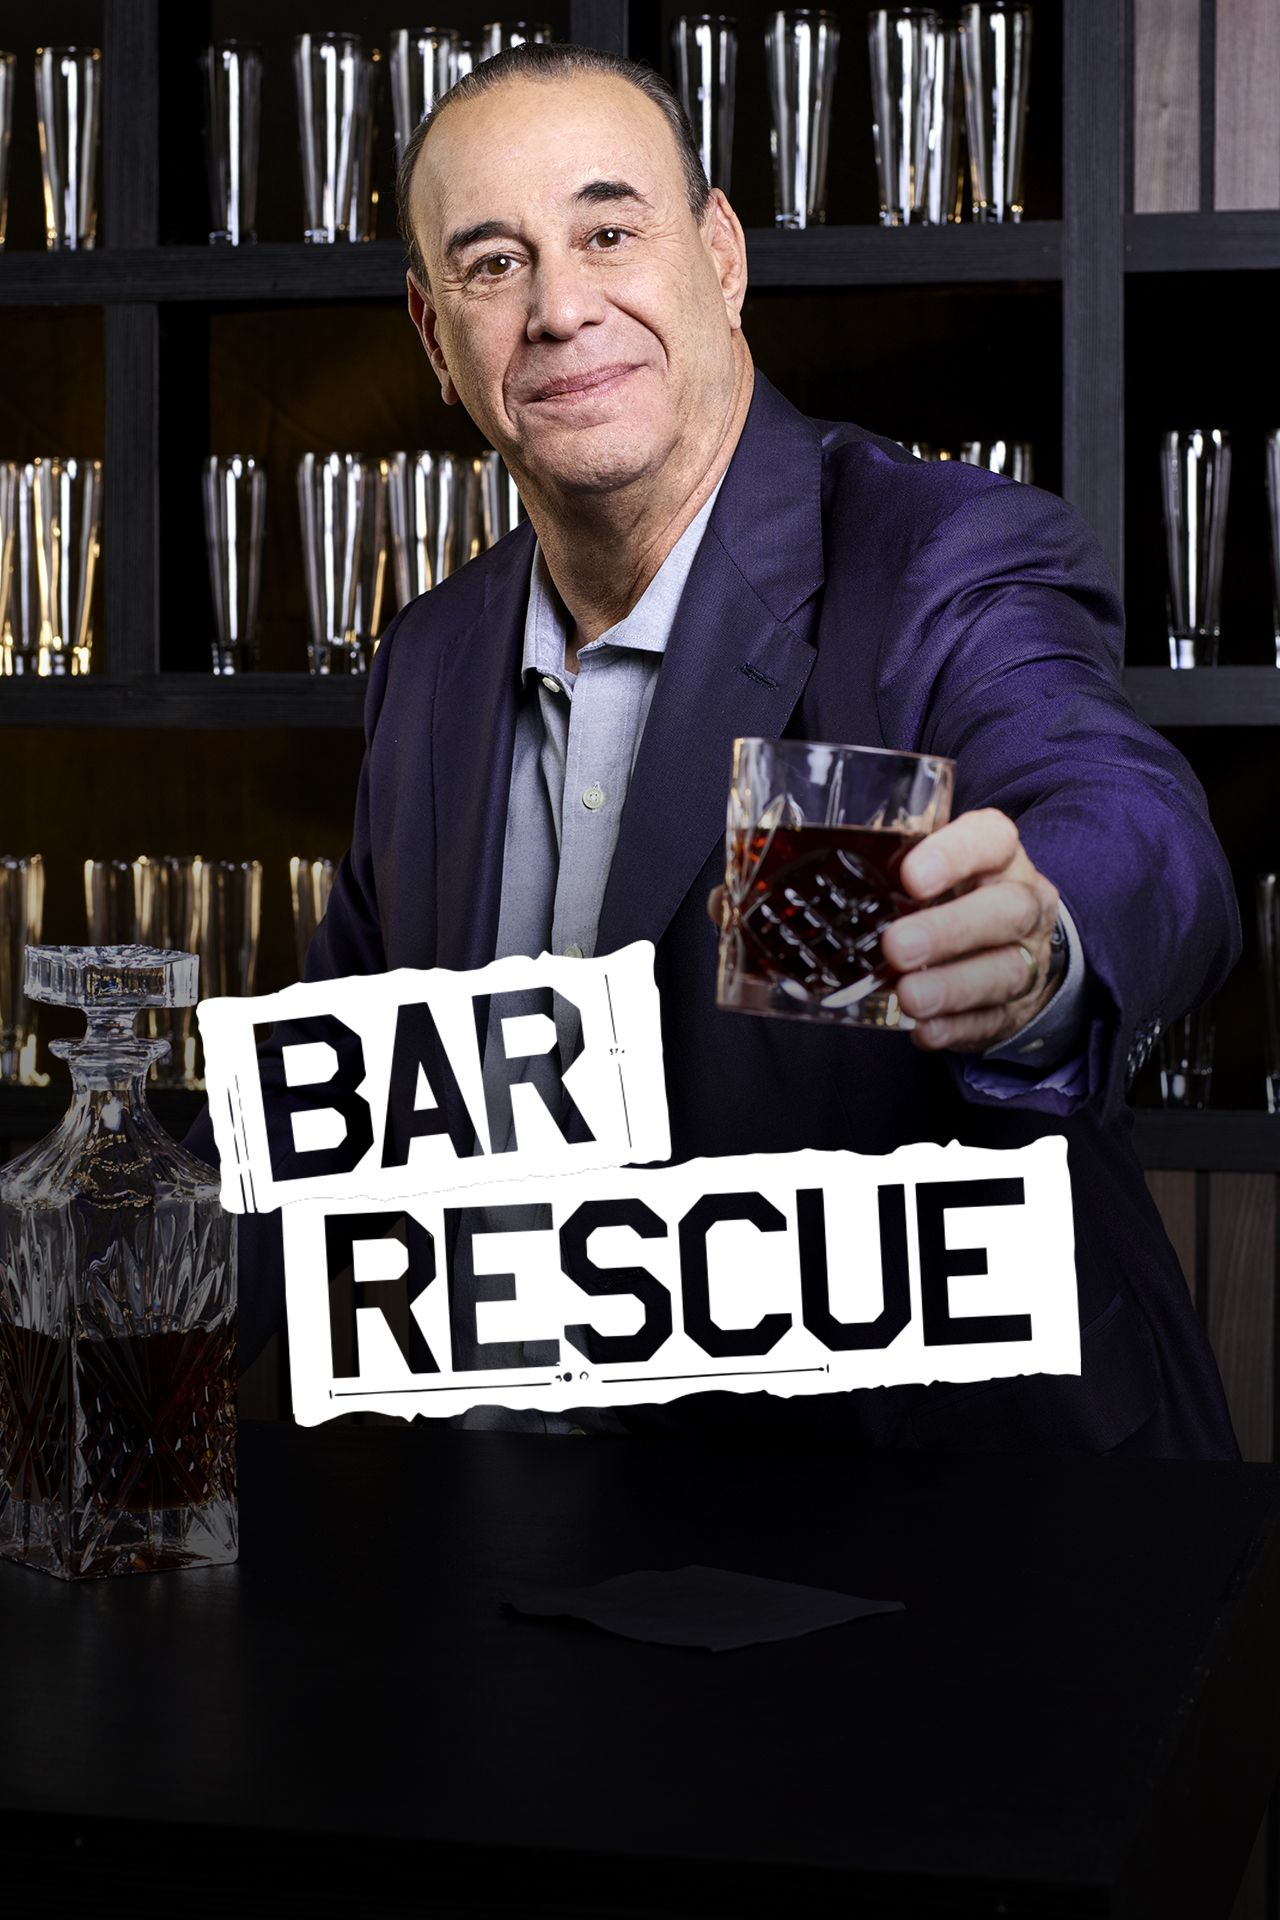 Bar Rescue - Season 6 Episode 44 - So We Meet Again, Mr. Taffer